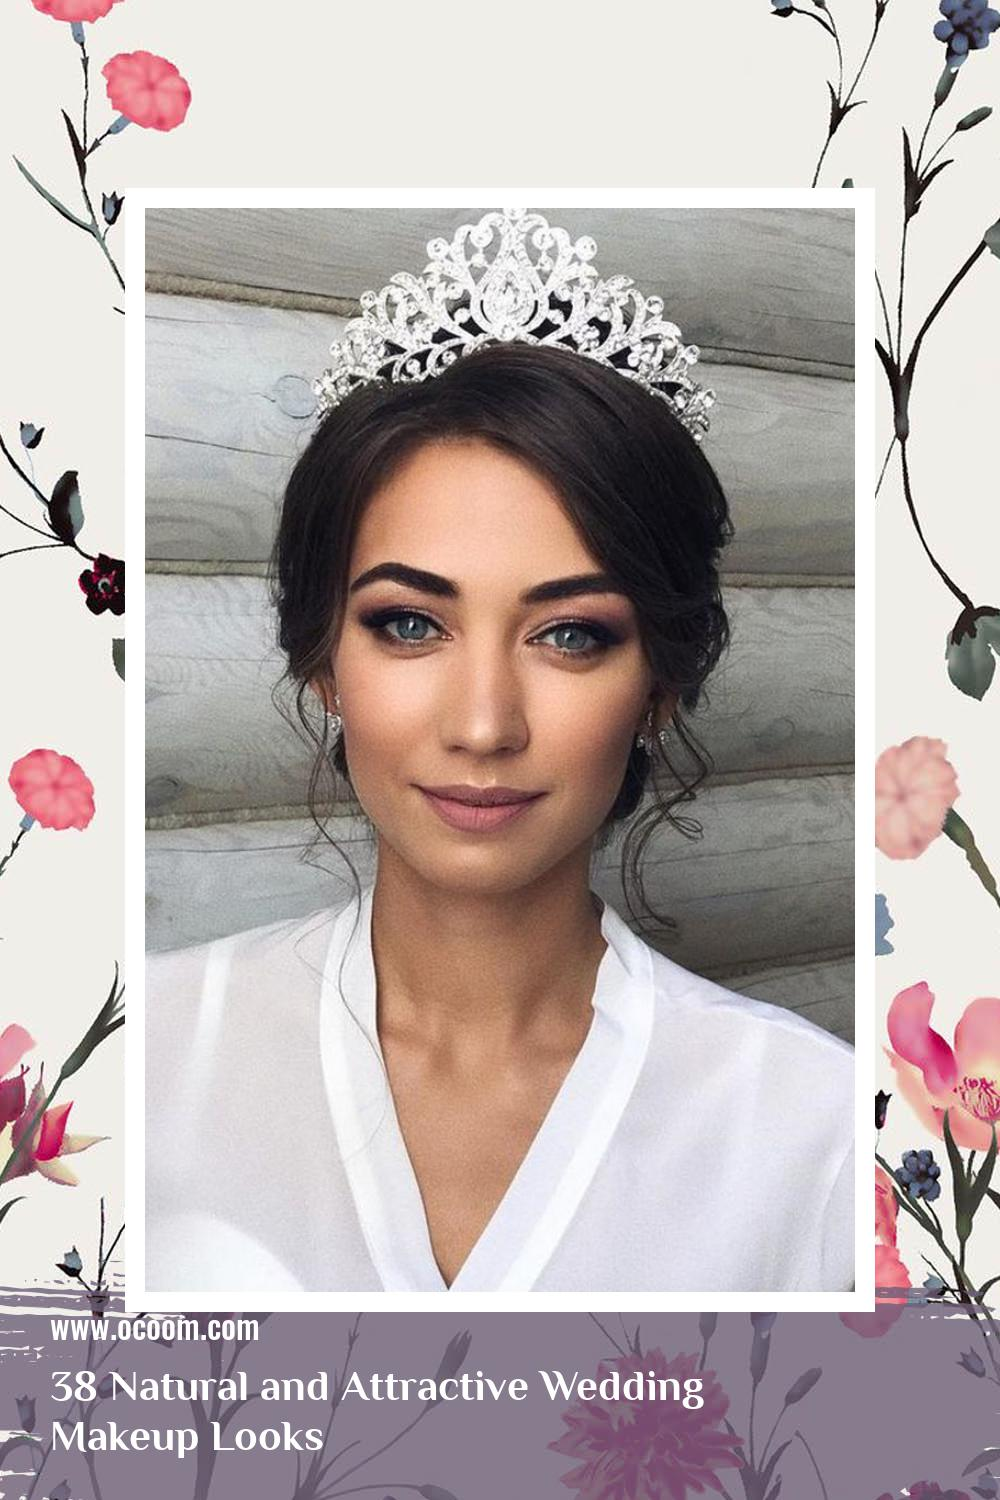 38 Natural and Attractive Wedding Makeup Looks 13